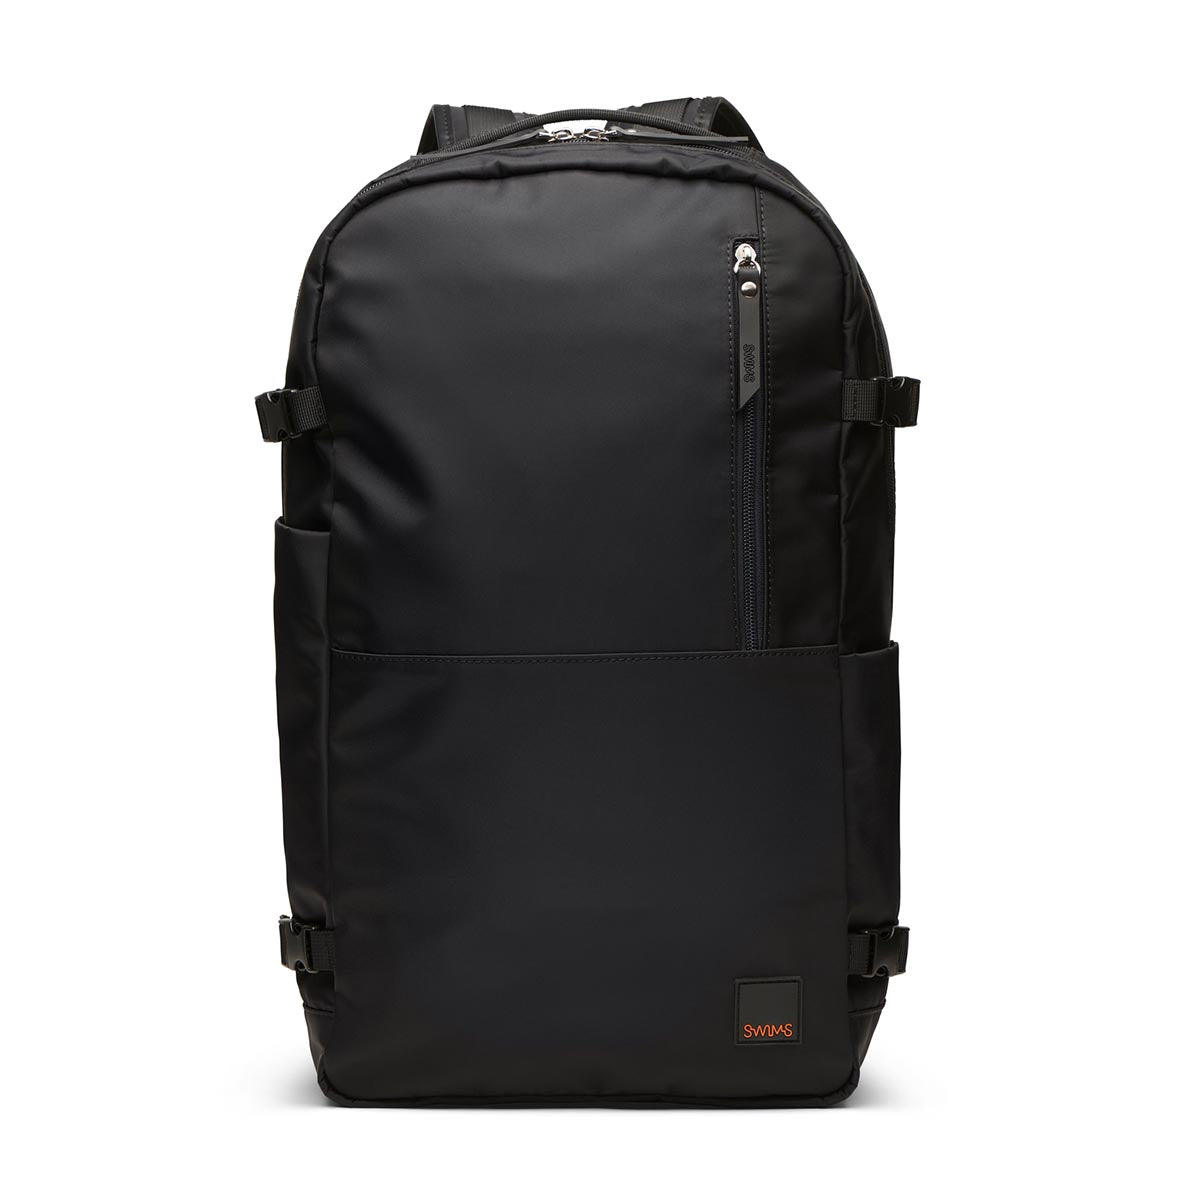 Motion Backpack - background::white,variant::Black